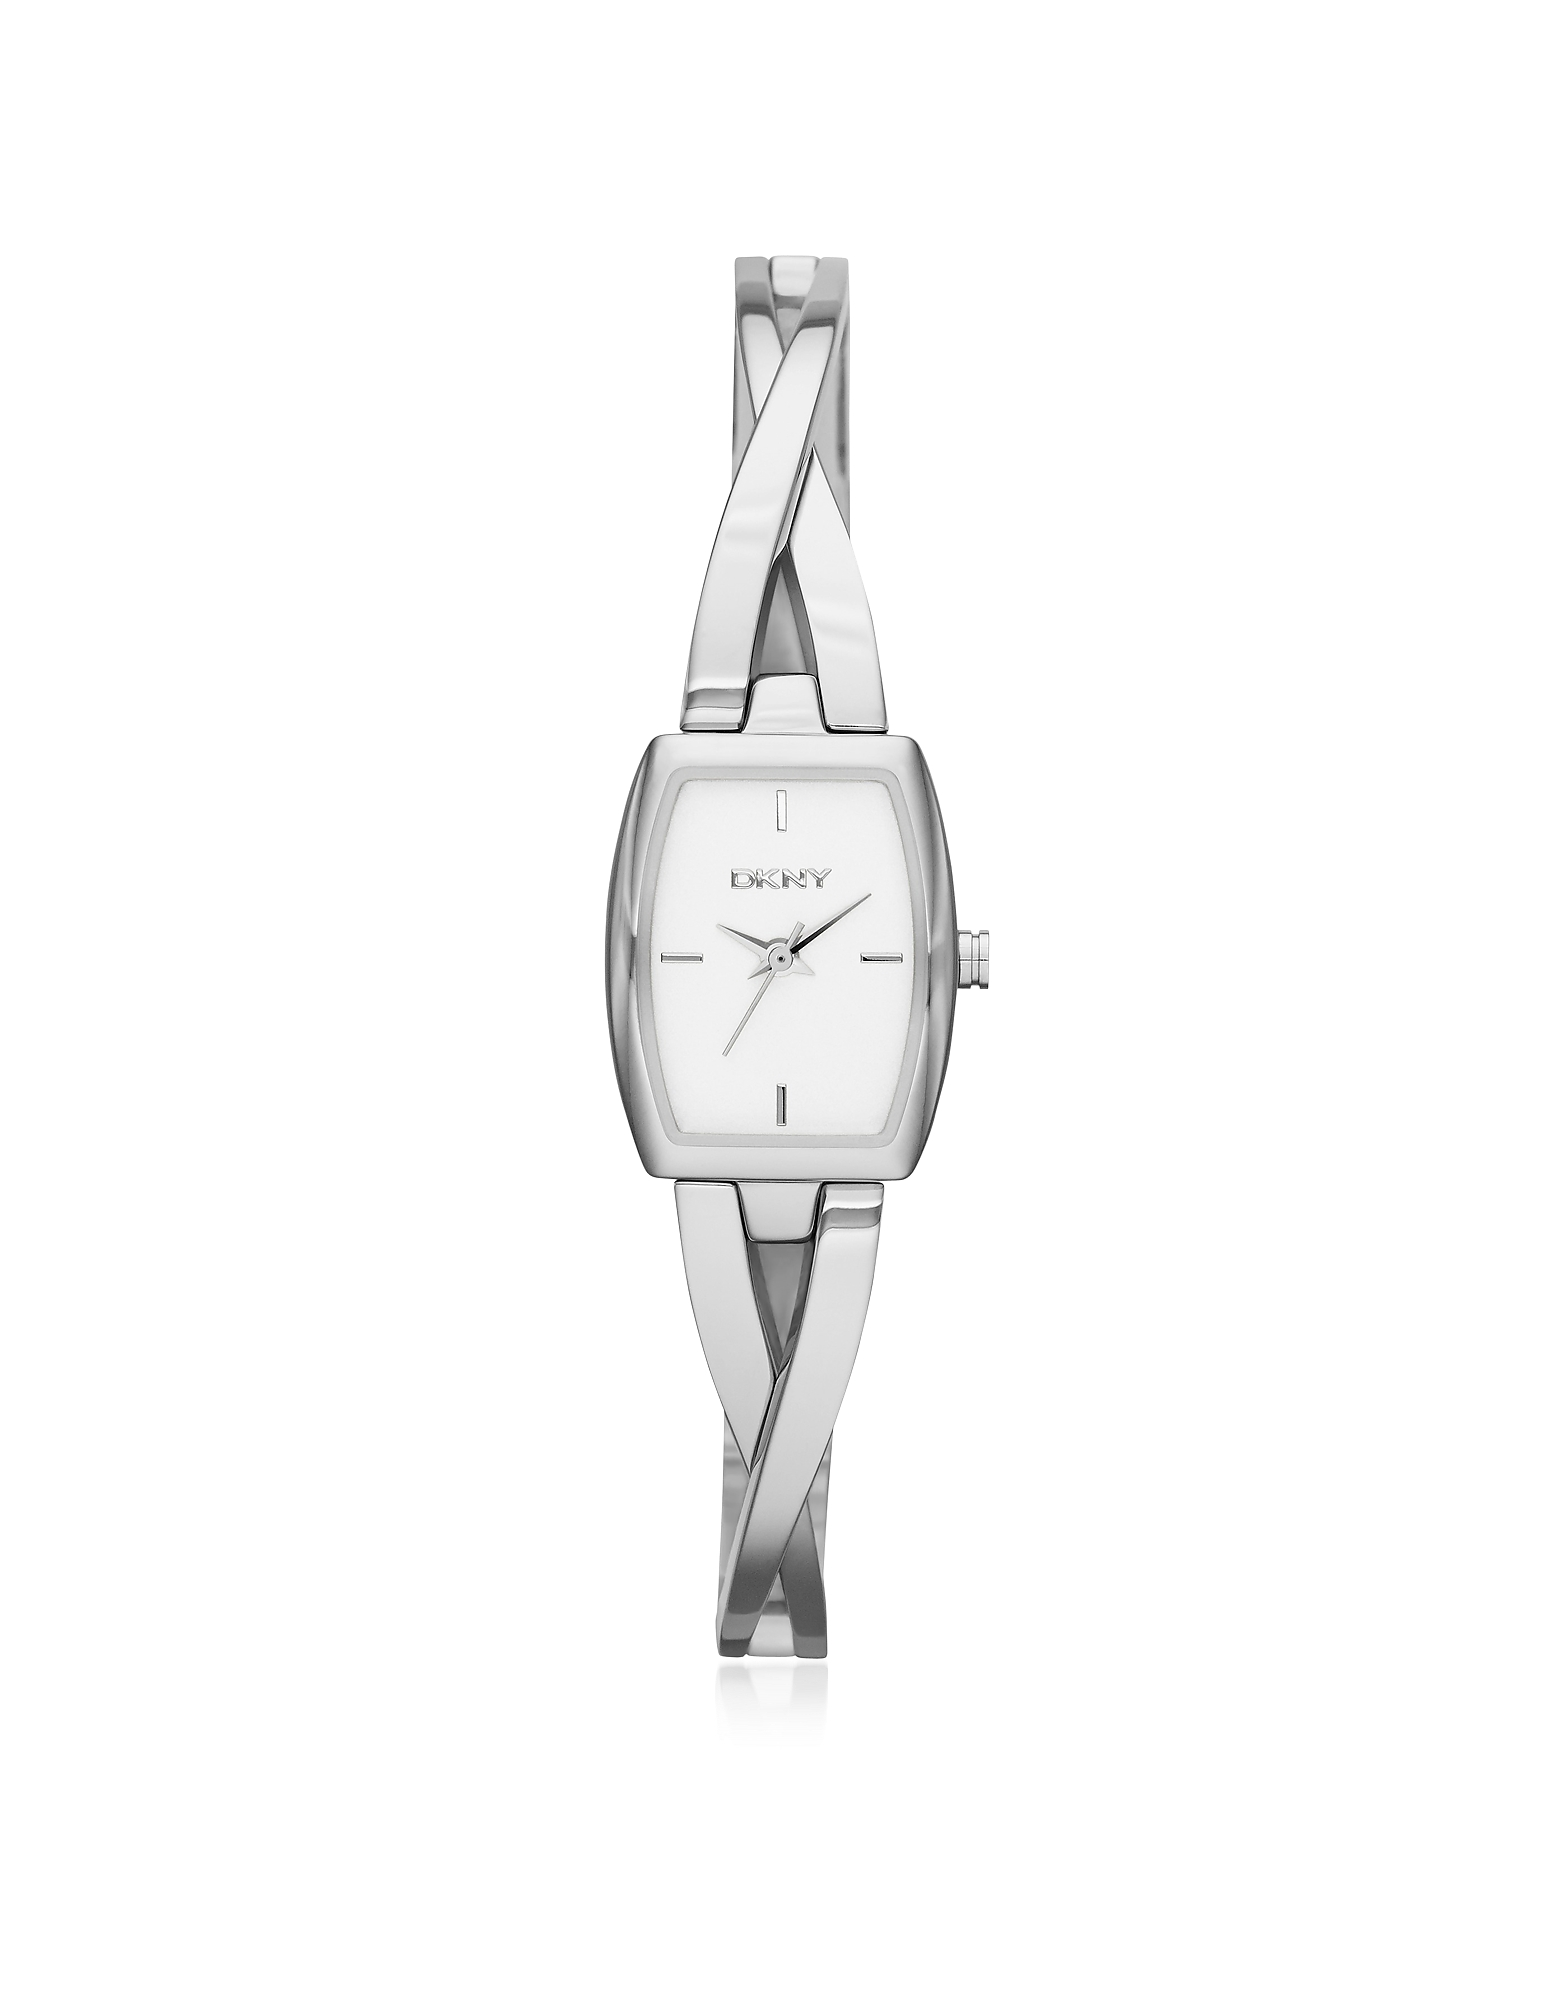 DKNY Women's Watches, Crosswalk Silver Tone Stainless Steel Women's Watch